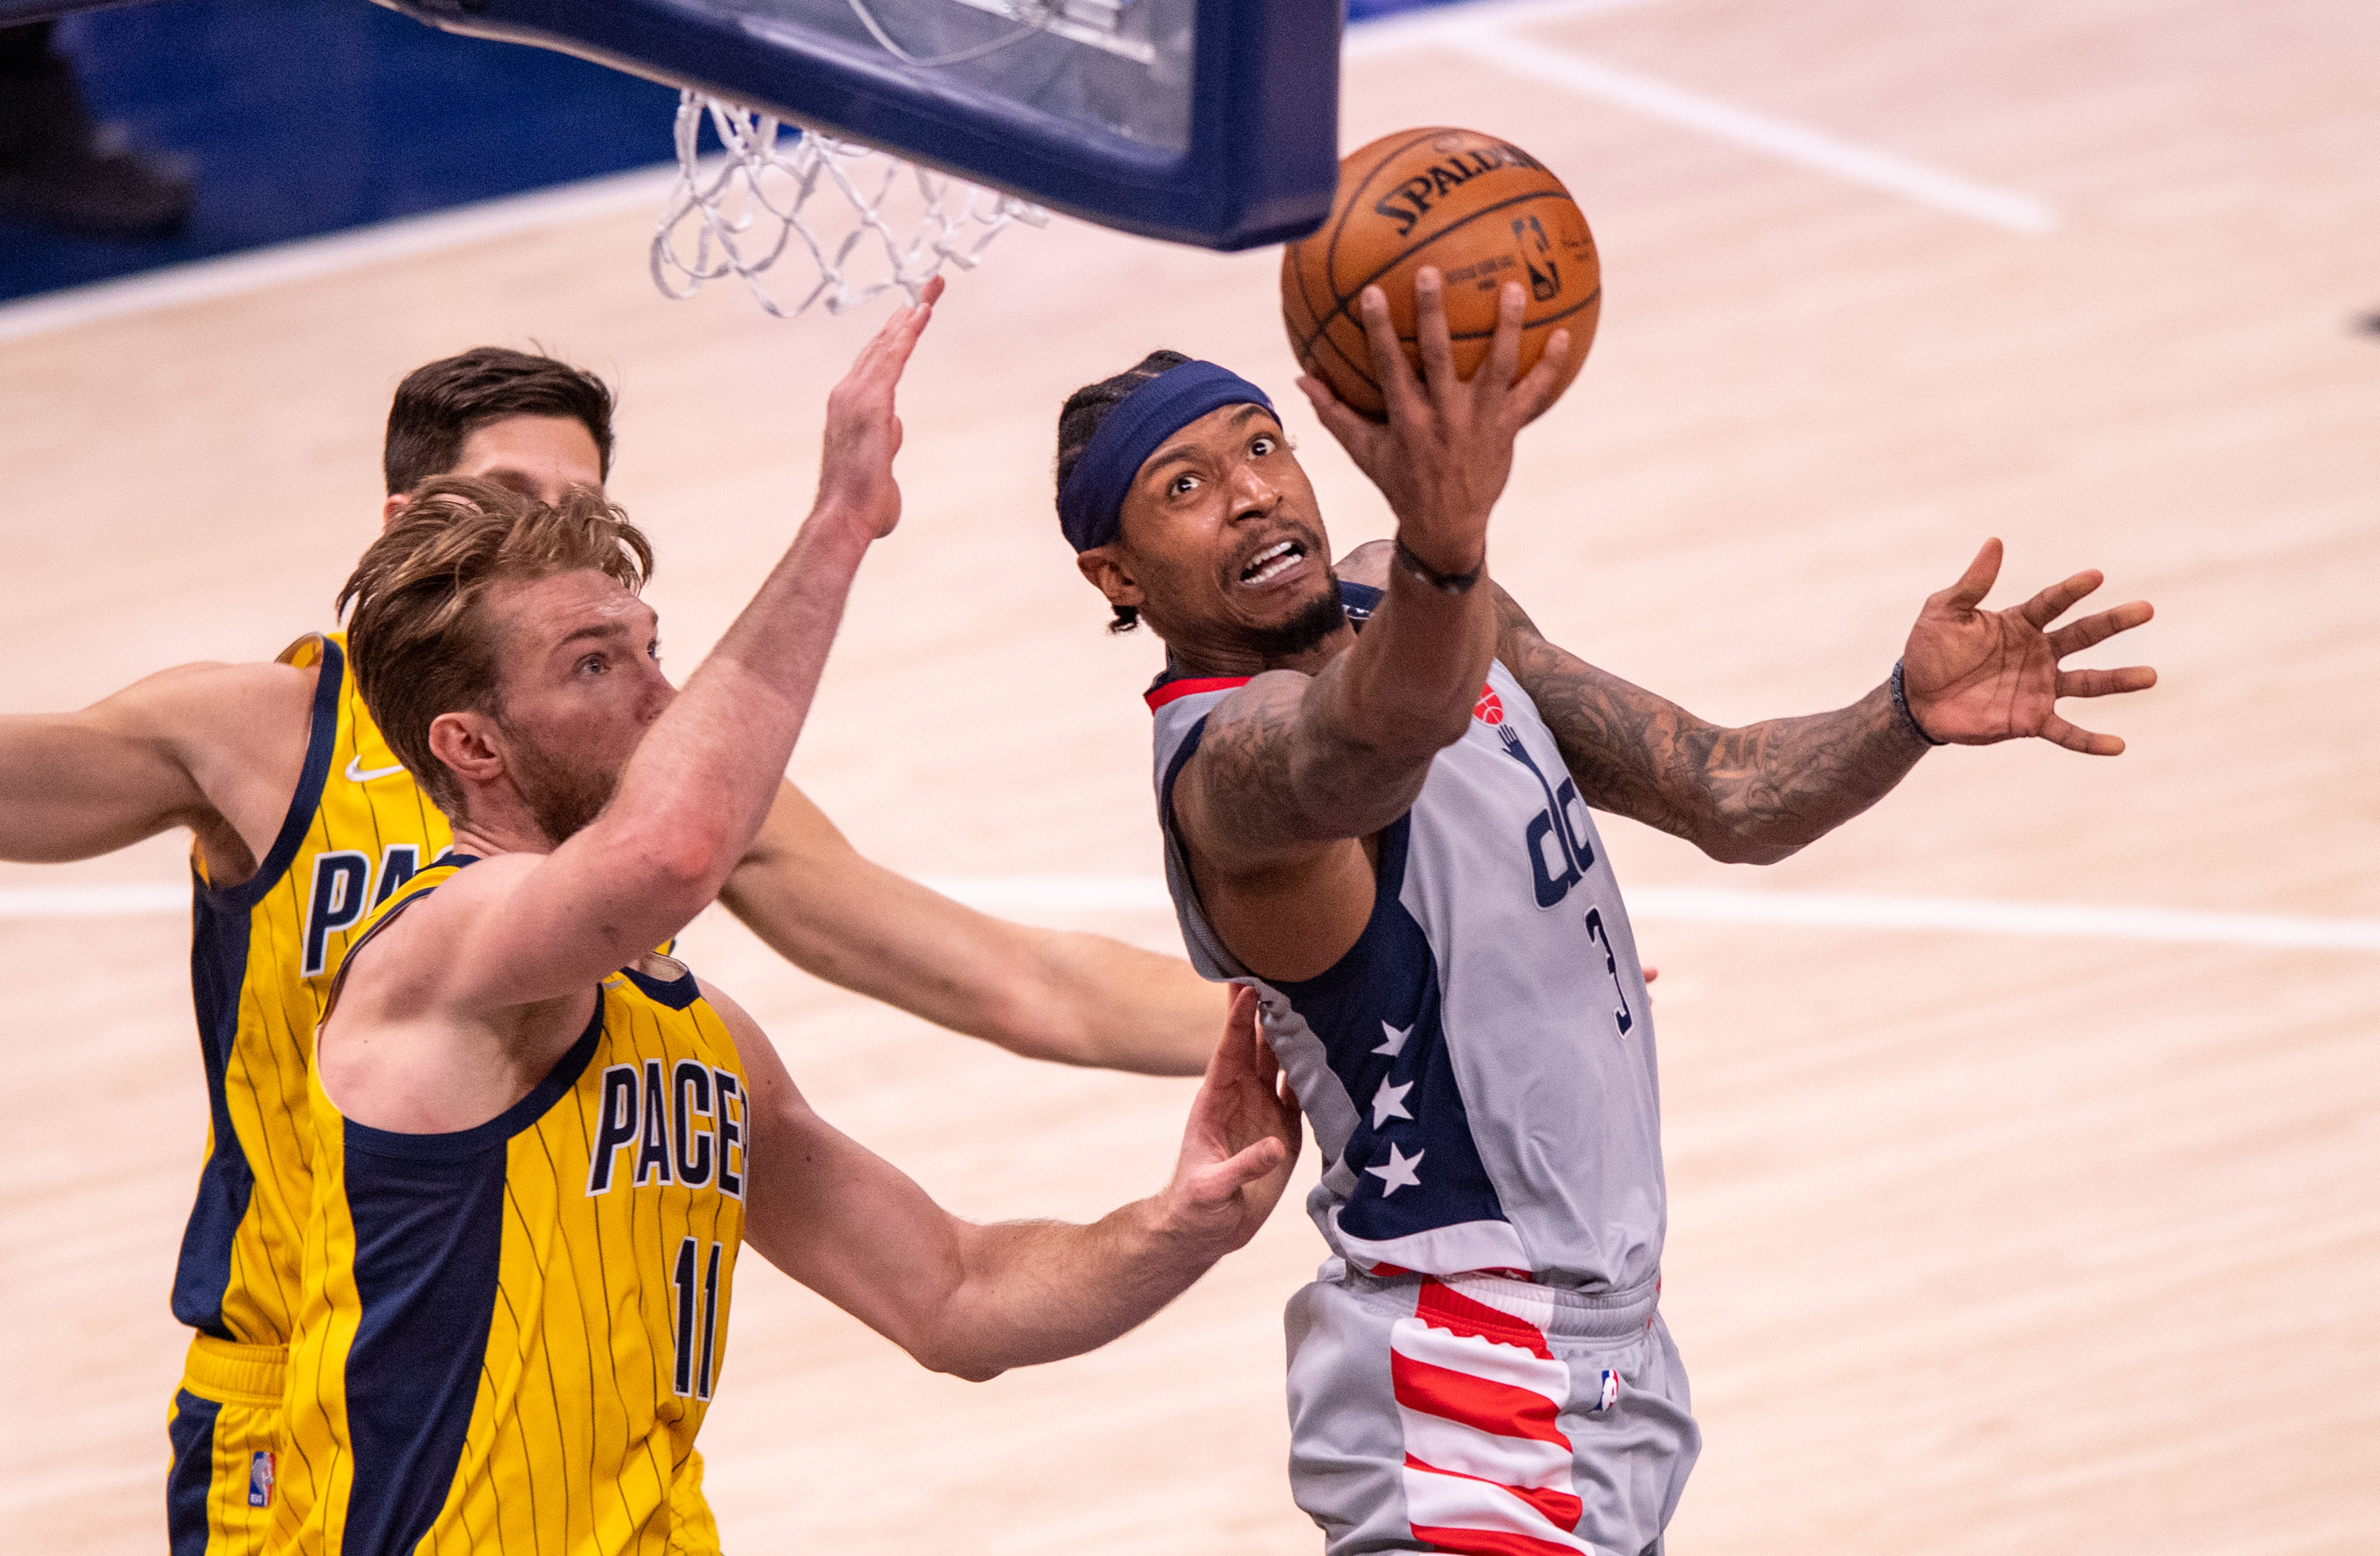 May 8, 2021; Indianapolis, Indiana, USA; Washington Wizards guard Bradley Beal (3) scores with a reverse layup during the second half against the Indiana Pacers at Bankers Life Fieldhouse. Mandatory Credit: Doug McSchooler-USA TODAY Sports